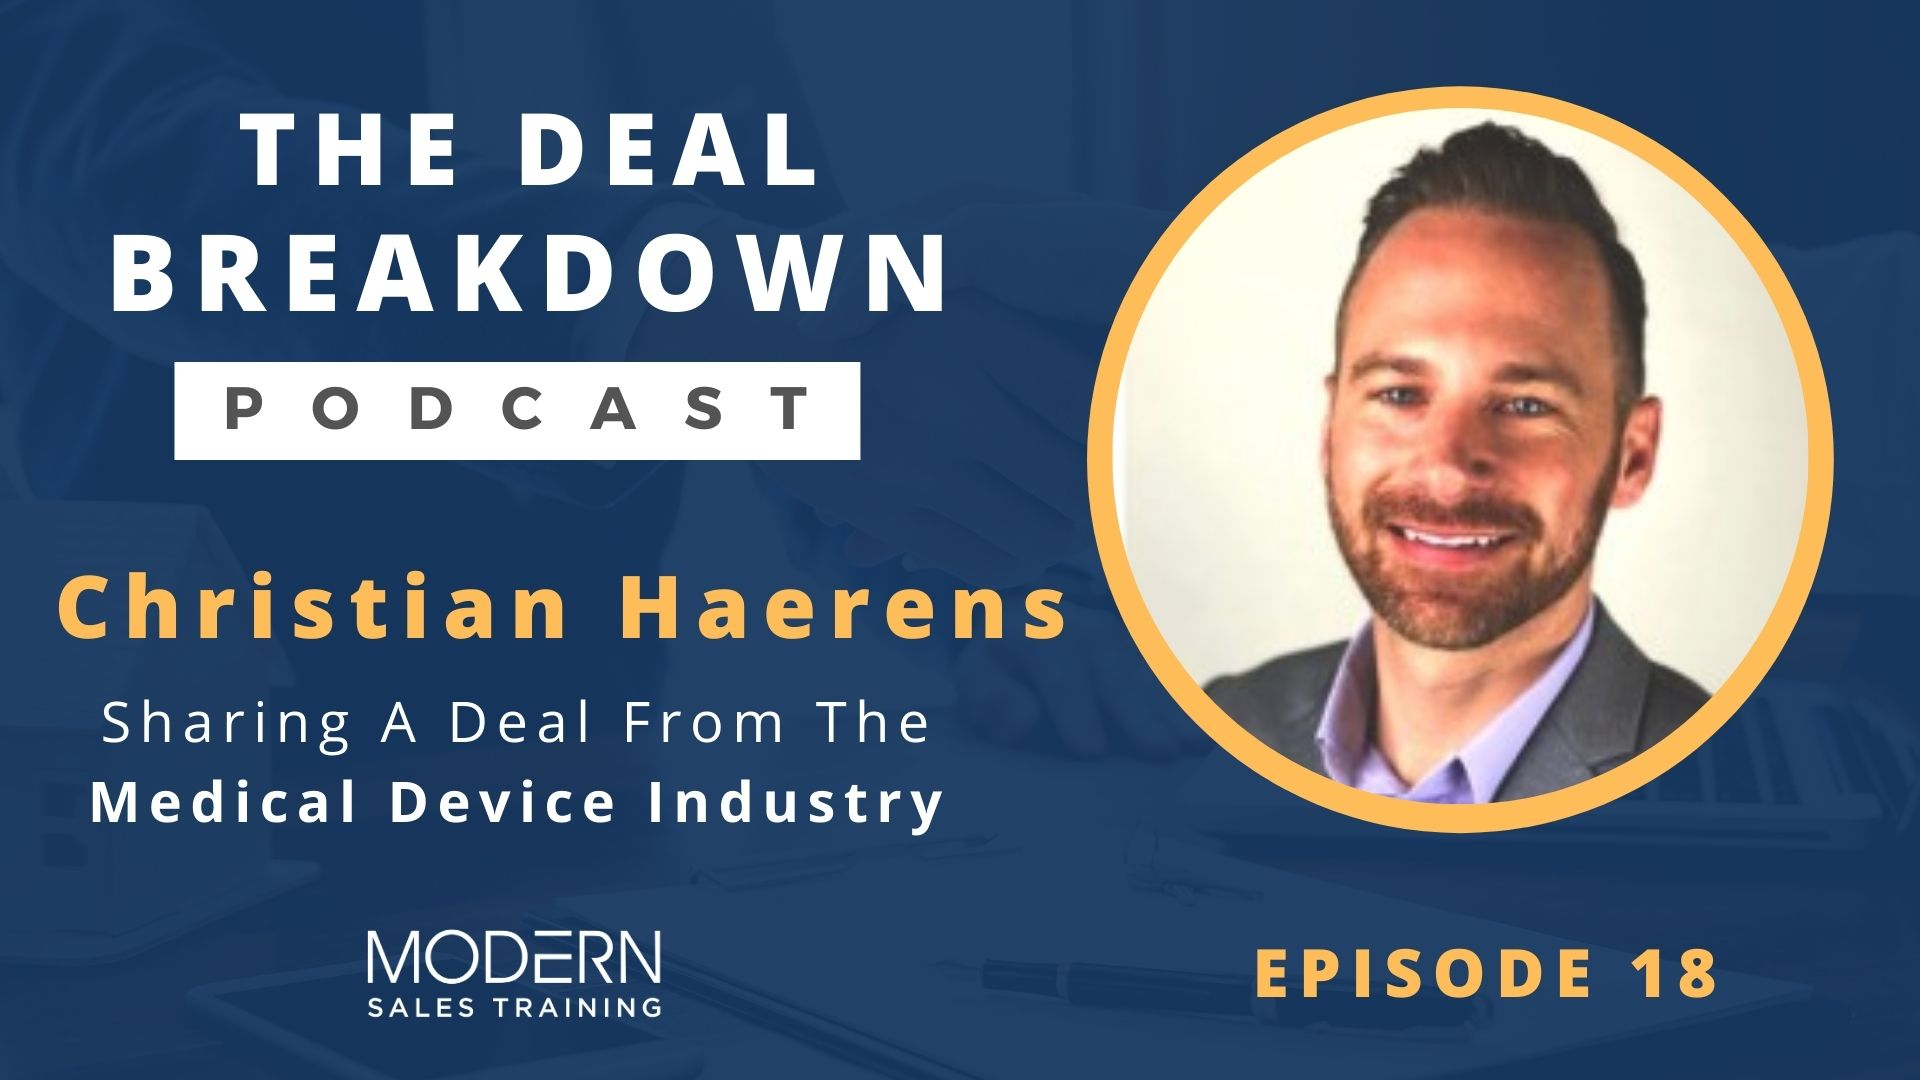 The-Deal-Breakdown-Podcast-Modern-Sales-Training-Christian-Haerens